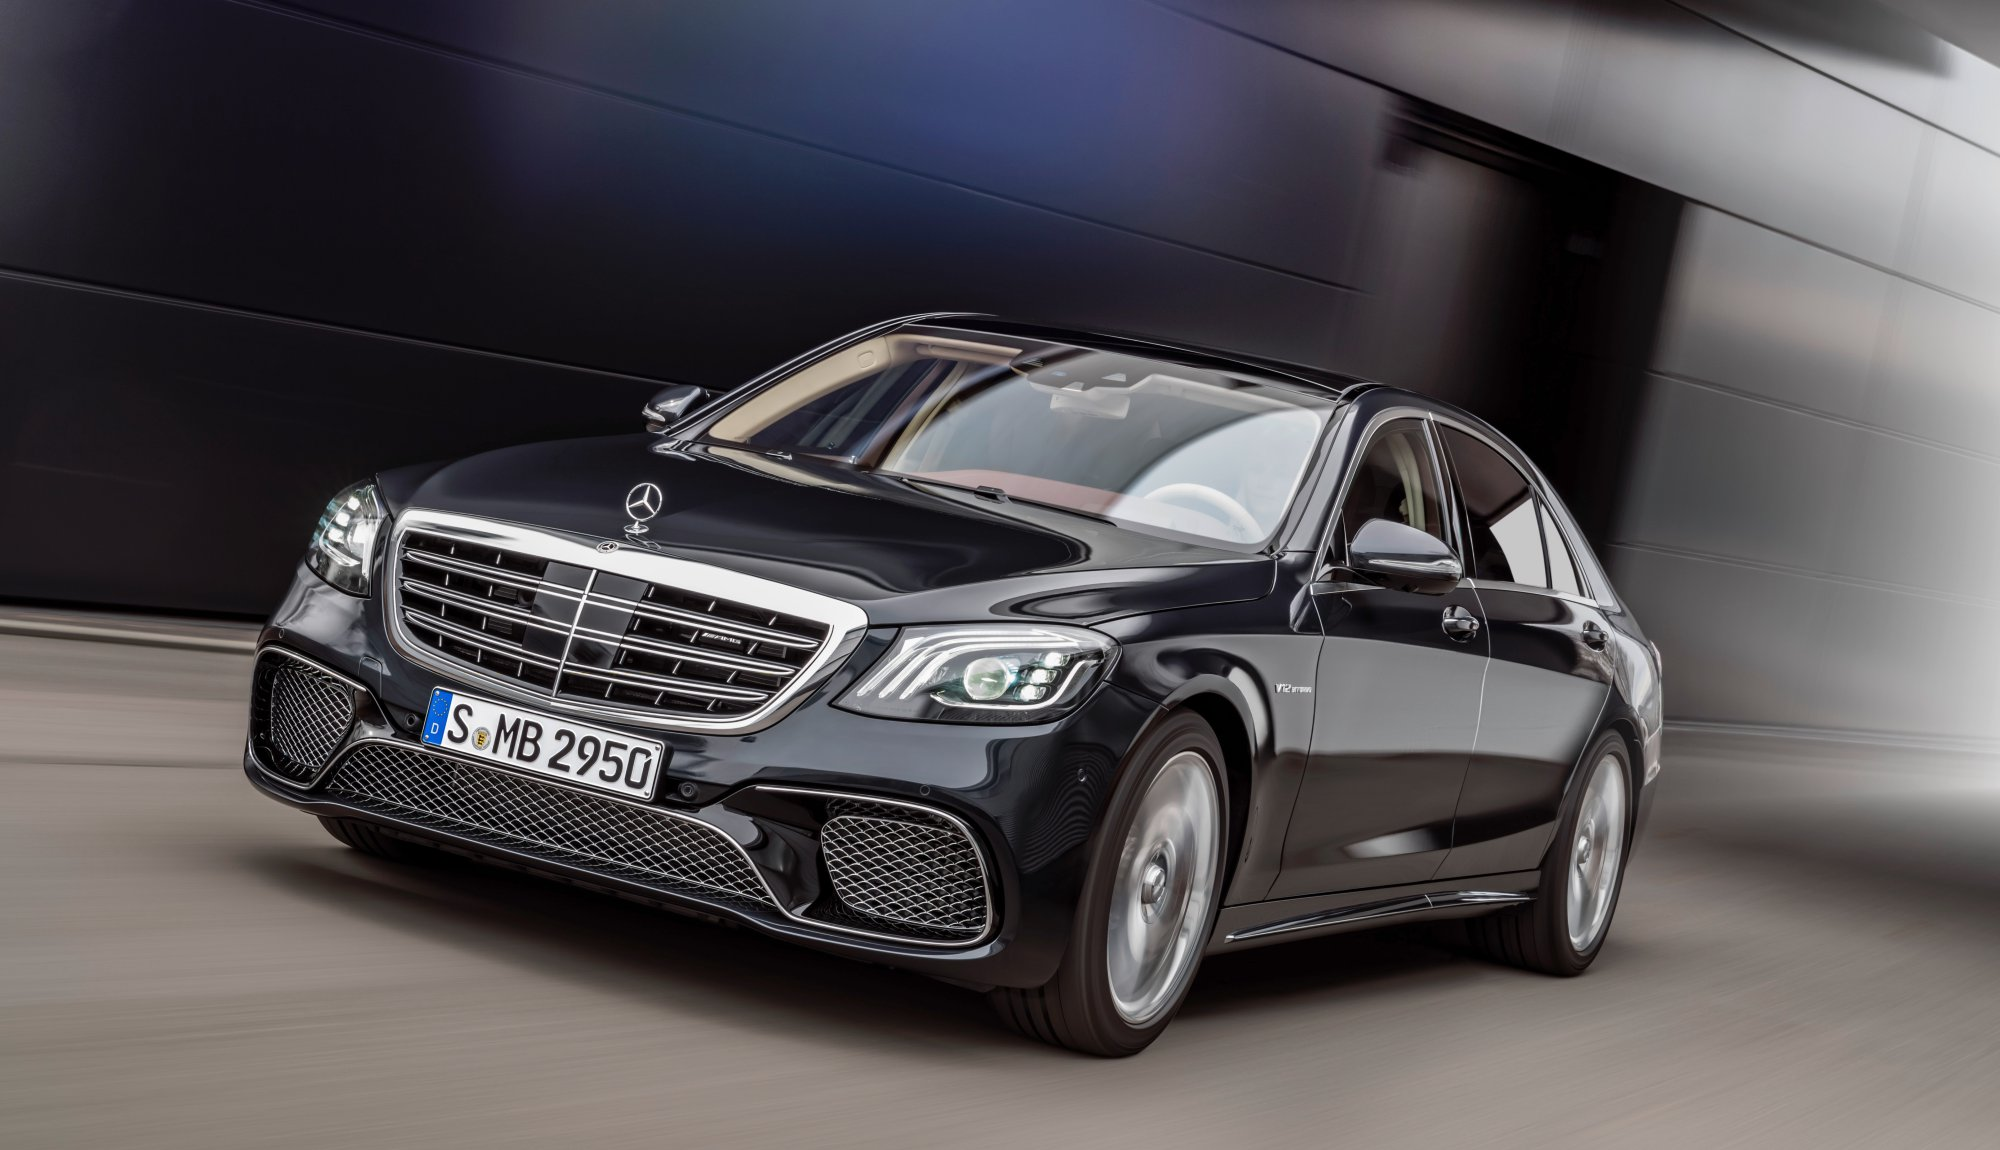 news 2017 mercedes benz s class limo revised still awesome. Black Bedroom Furniture Sets. Home Design Ideas